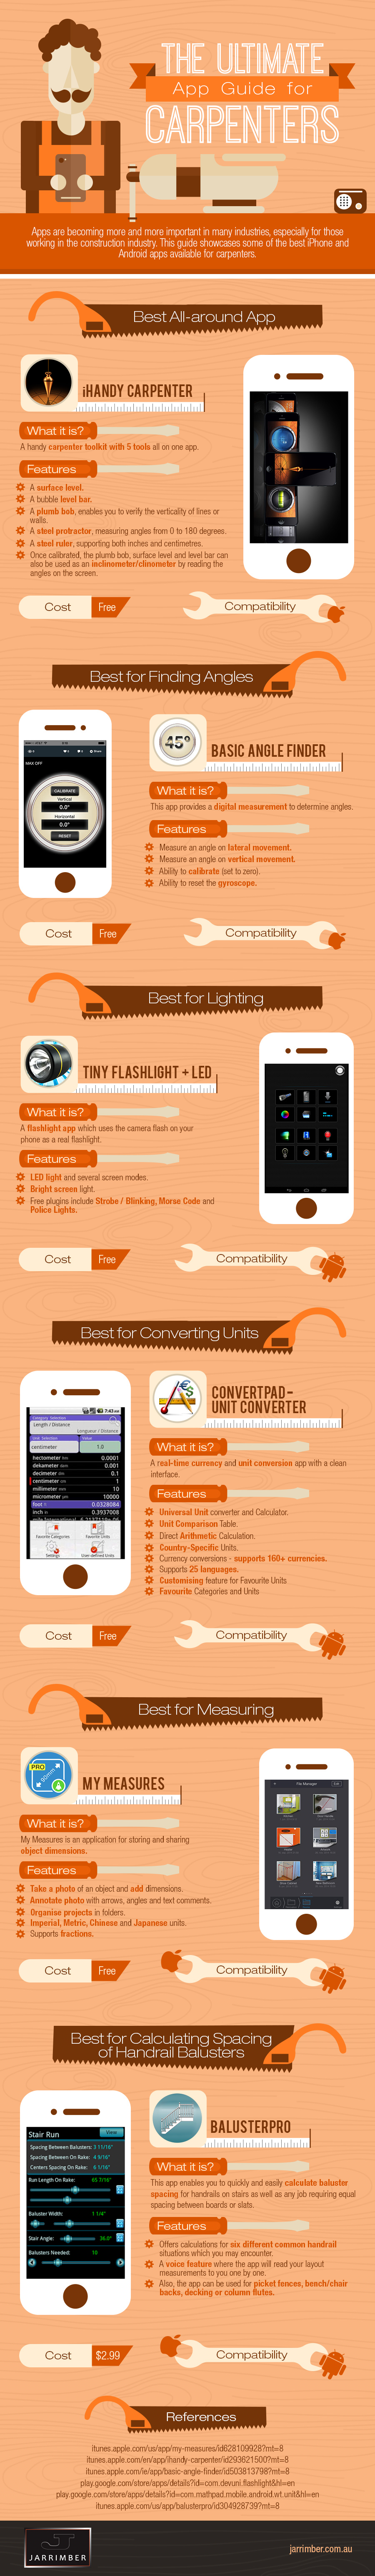 The Ultimate App Guide for Carpenters